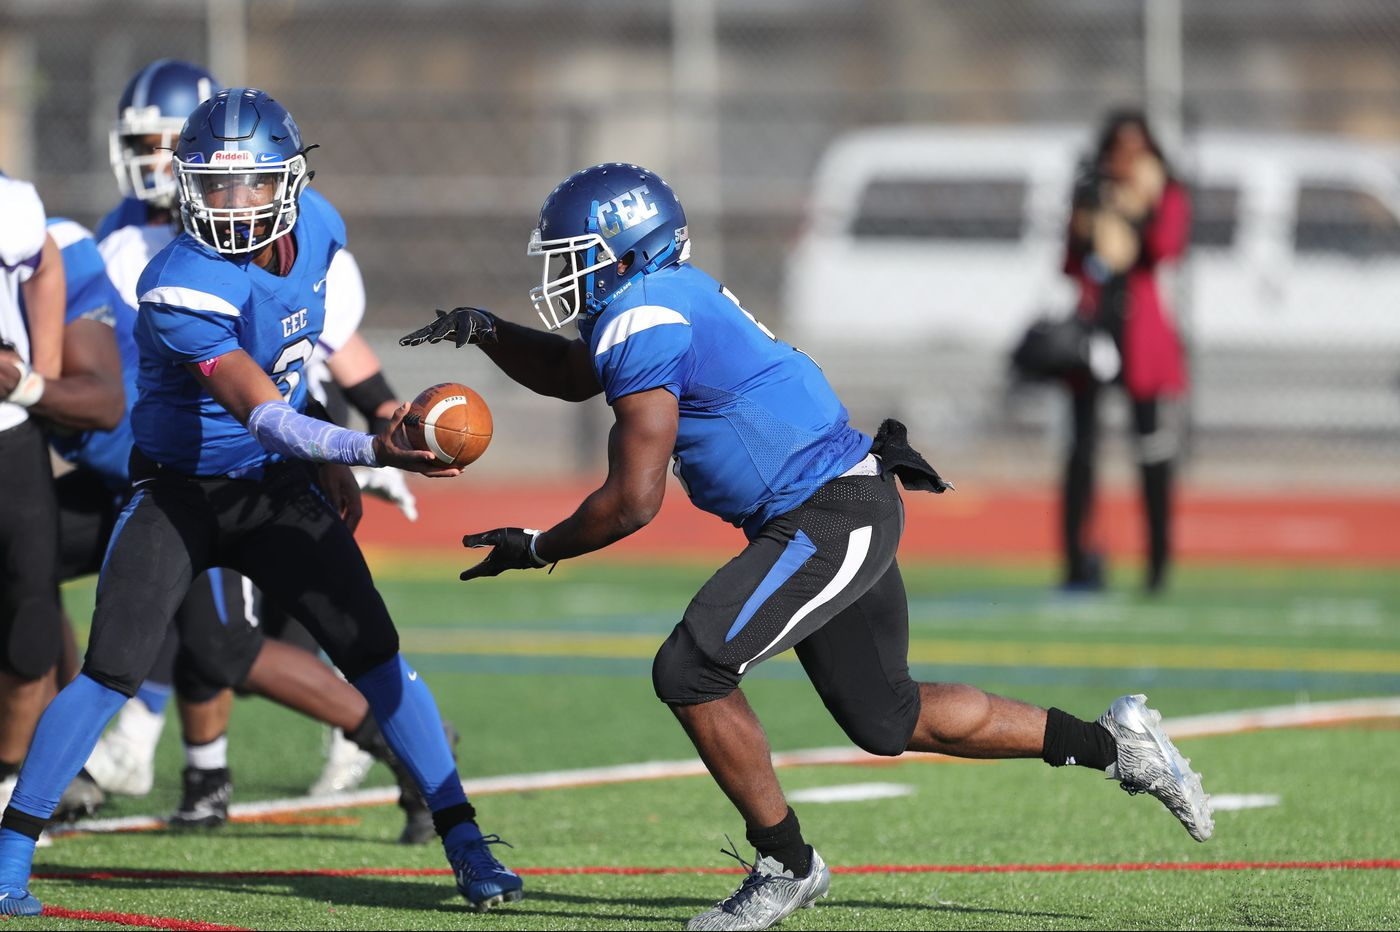 Conwell-Egan vs. Neumann-Goretti one of Week 5's top football games